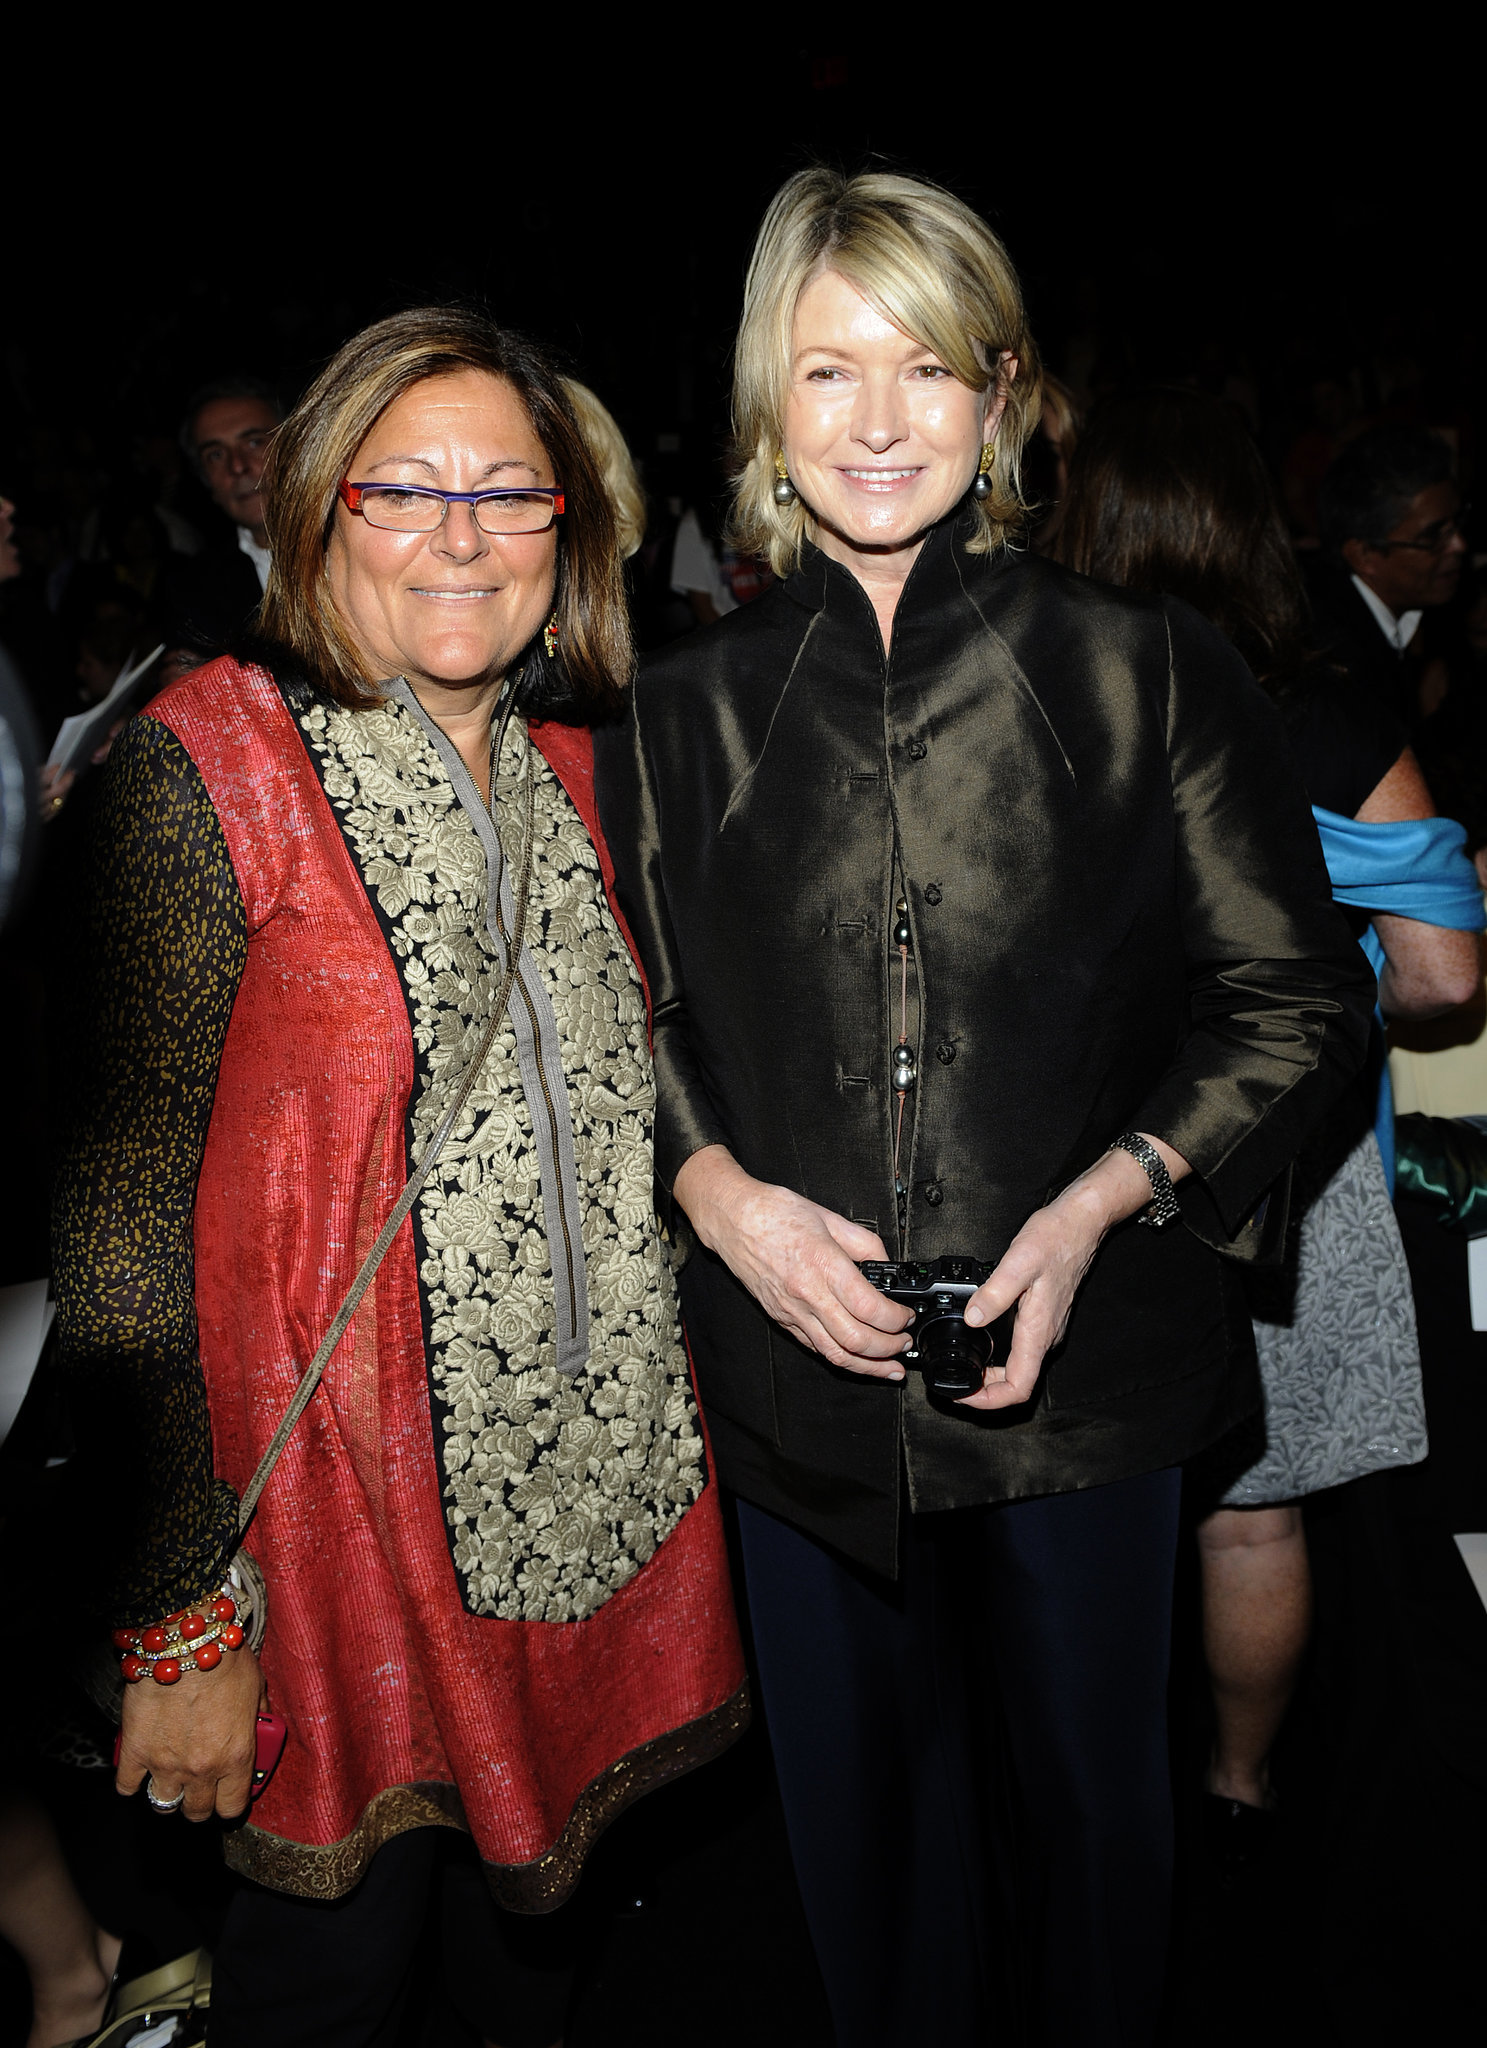 8. When She Was Front Row With Fern Mallis